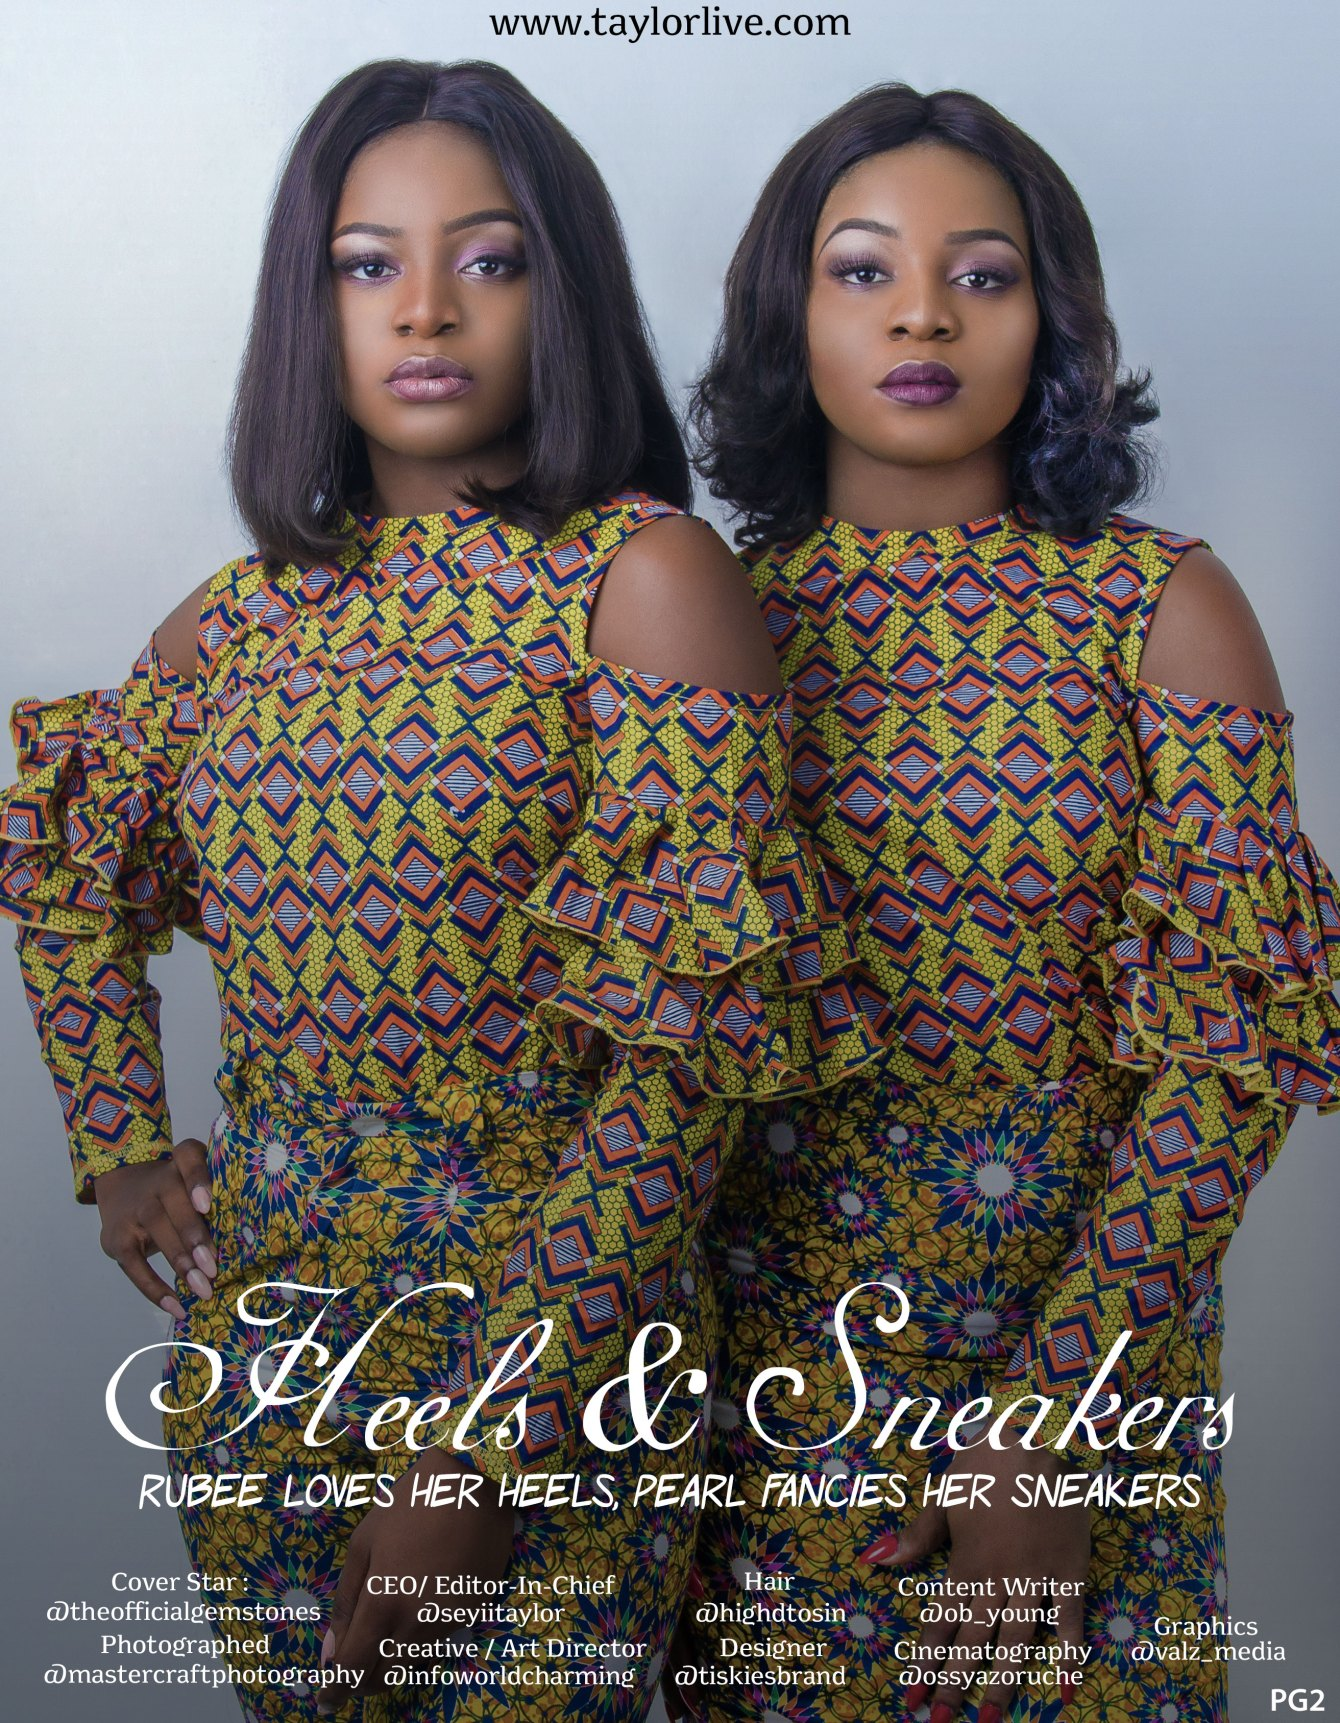 You Look Like Me! Rubee & Pearl Covers Taylor Live Magazine's Latest Issue